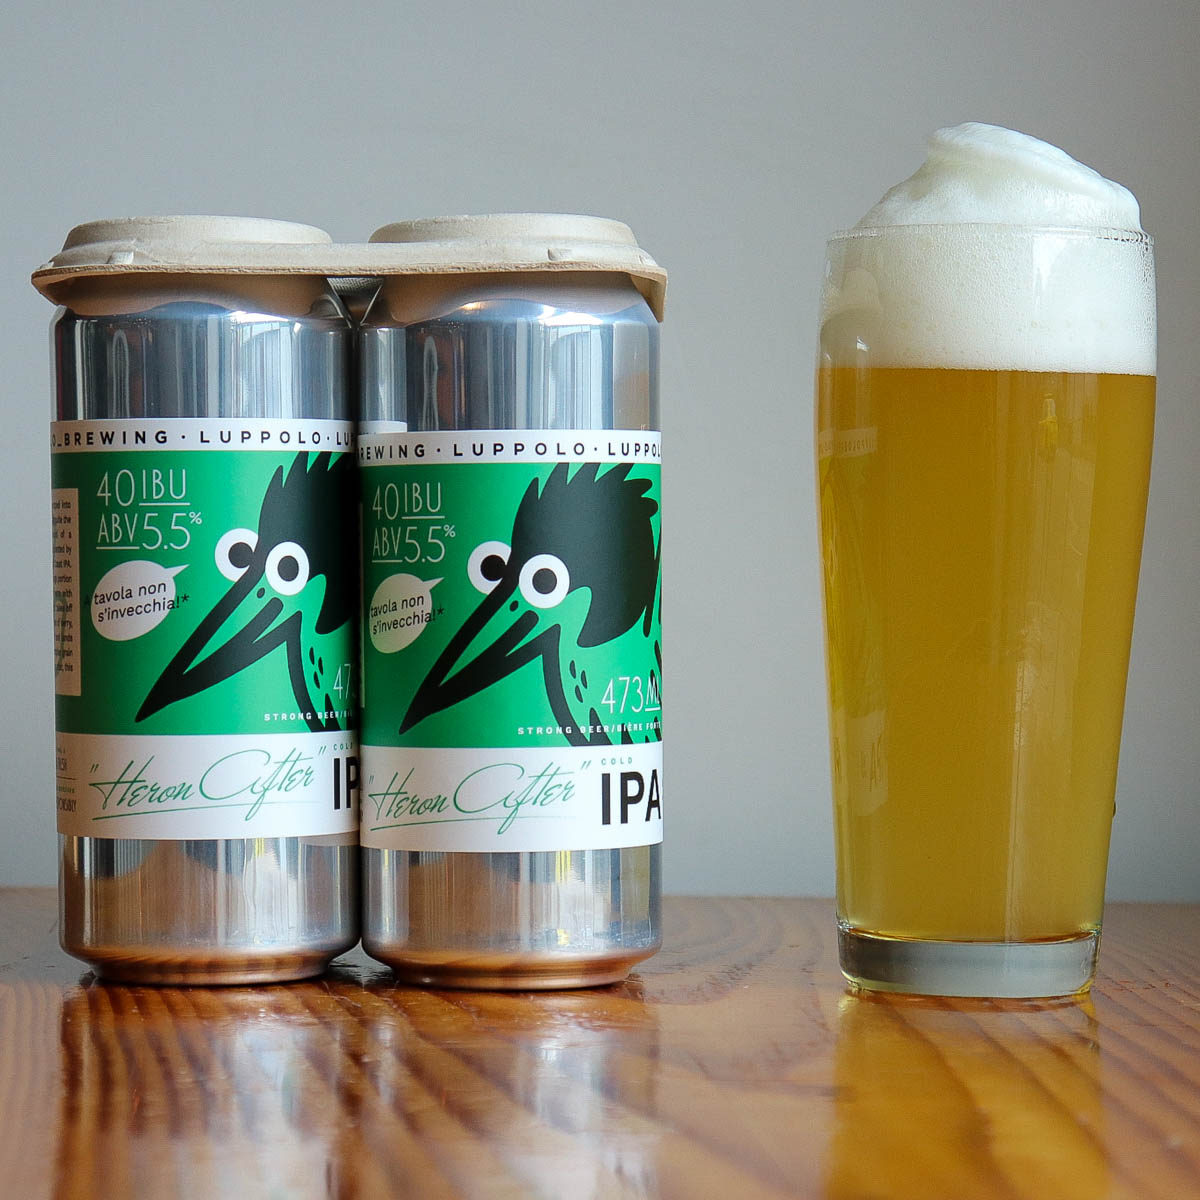 Heron After Cold IPA